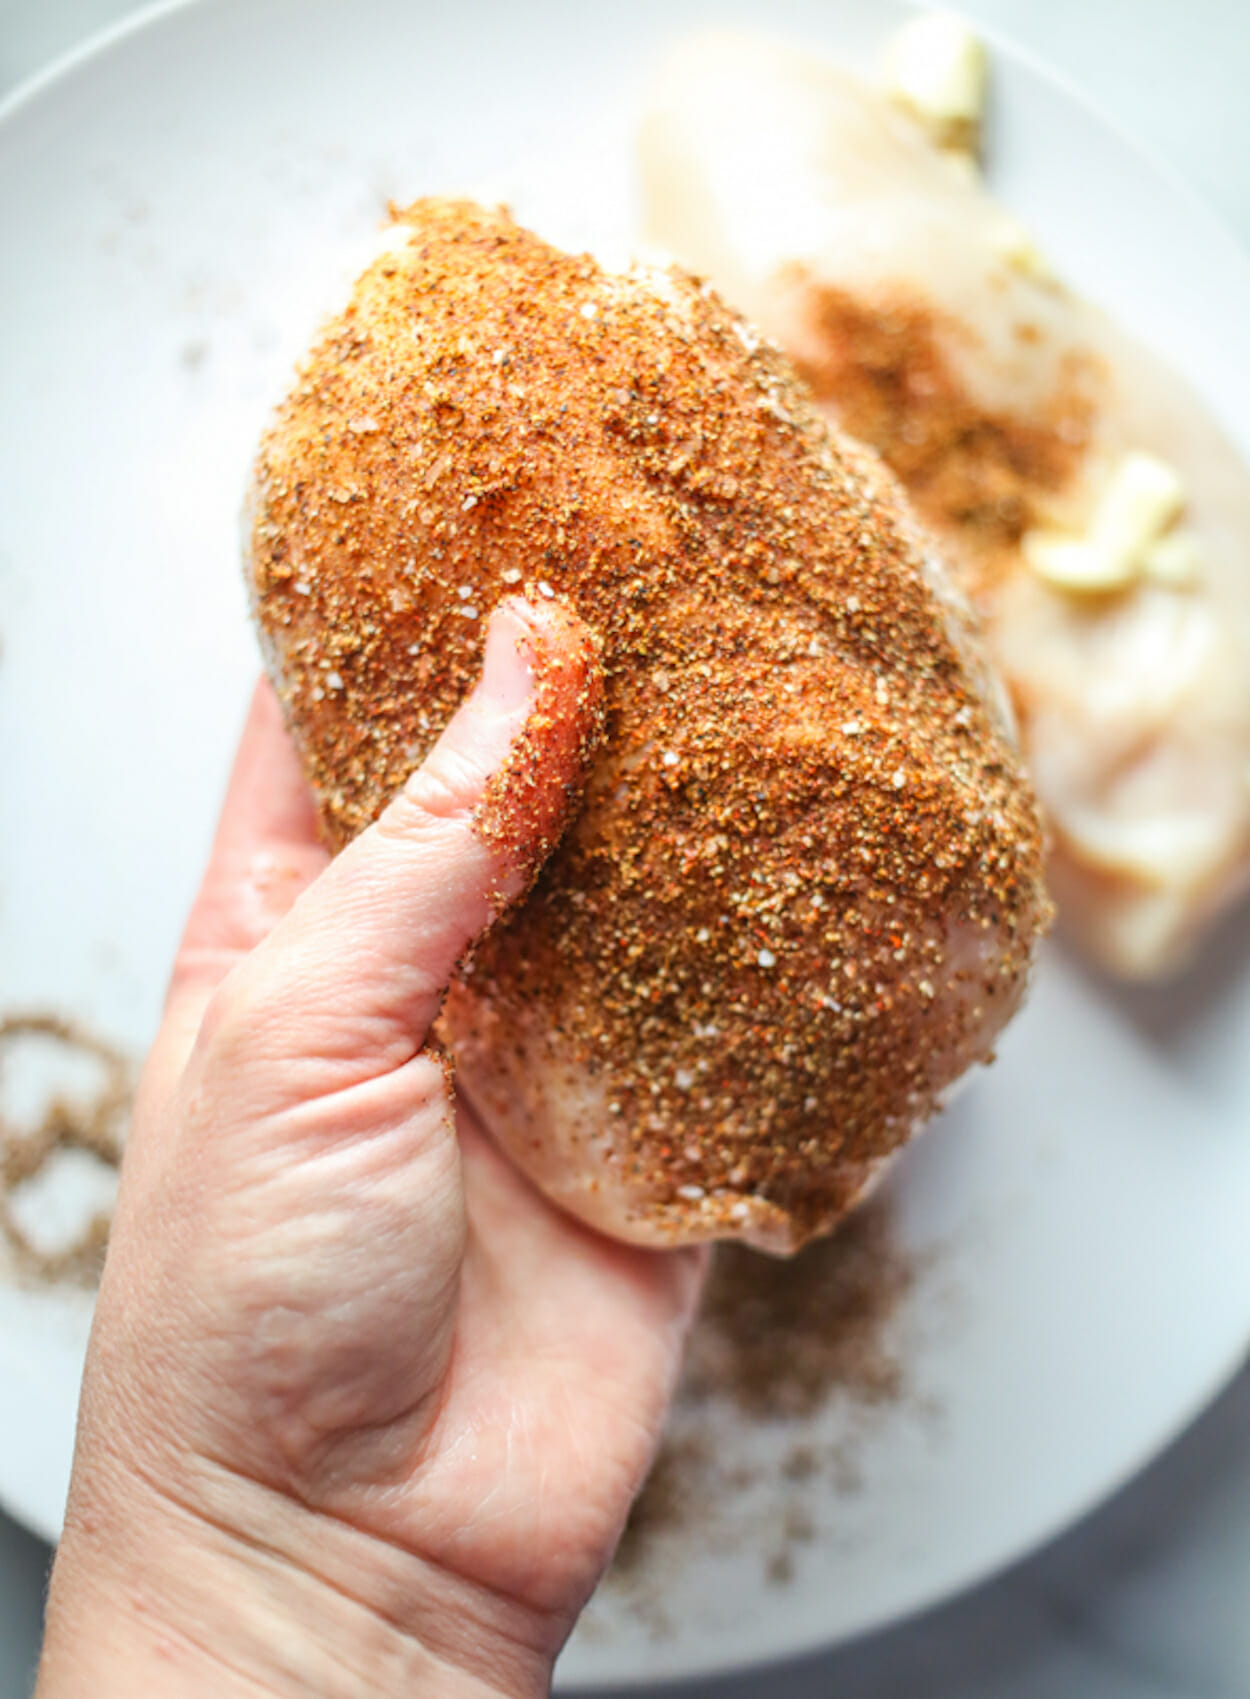 marinated chicken rubbed in spices